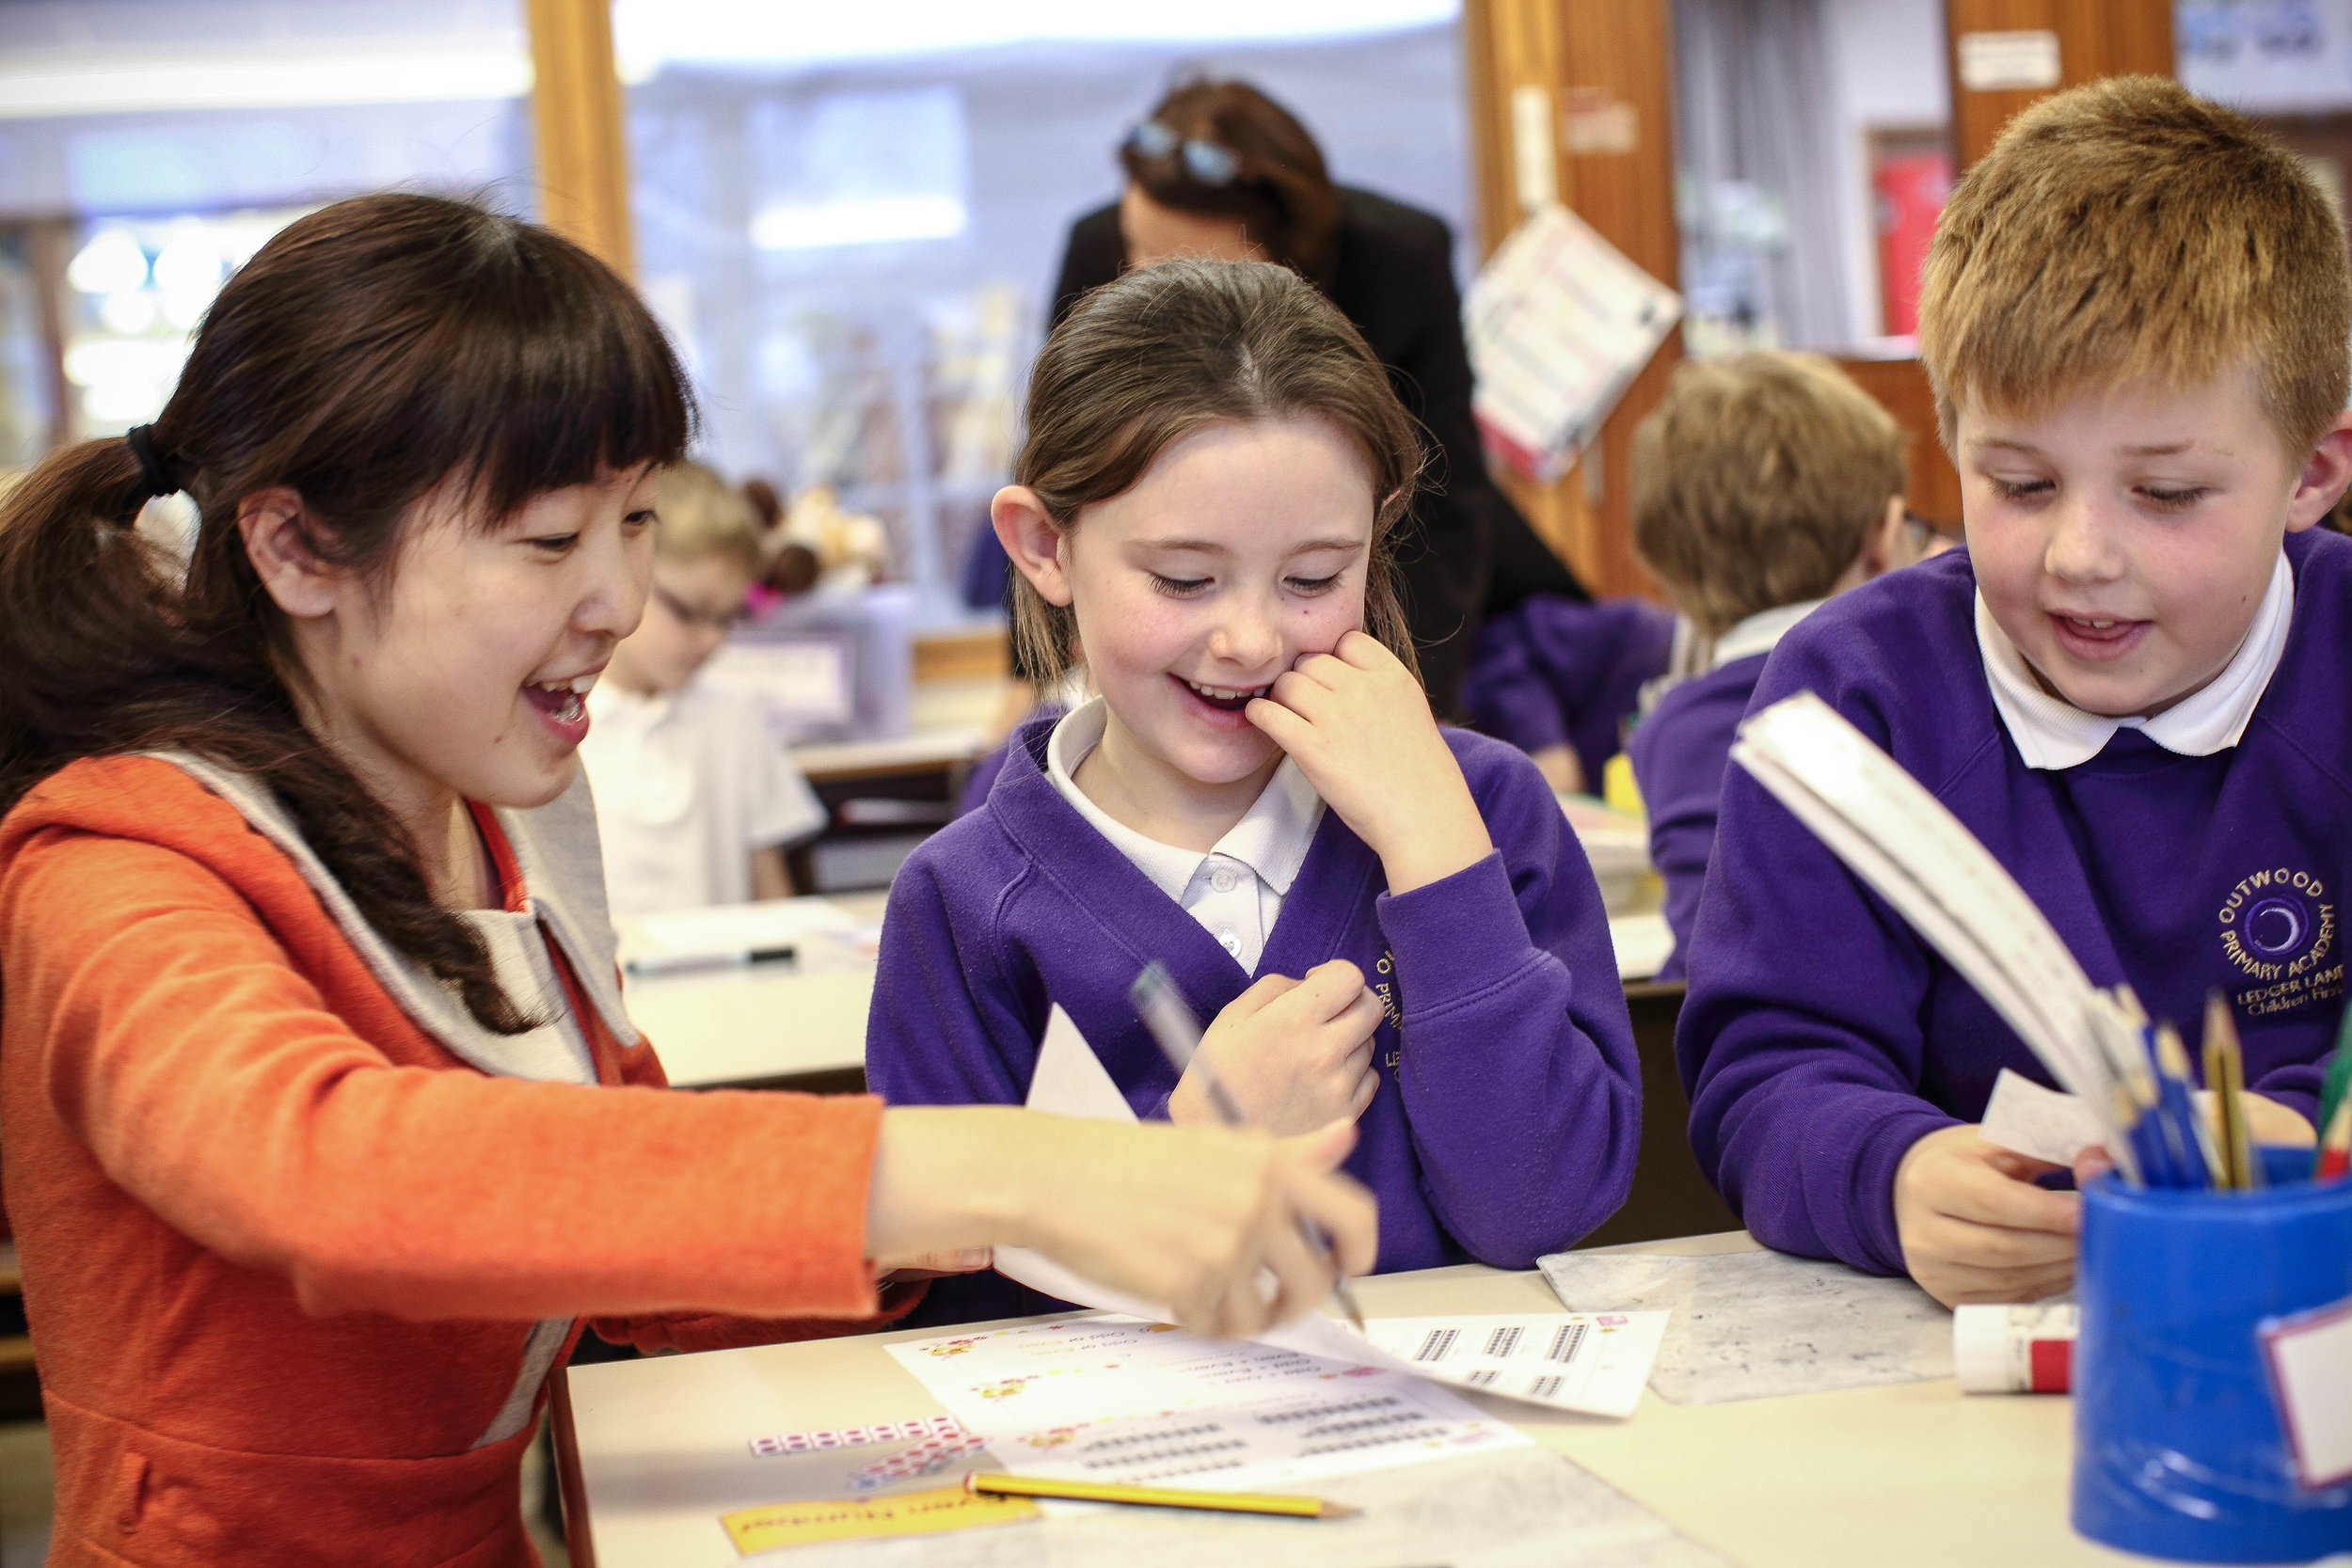 Care and Guidance - Underpins all aspects of our provision so that our students enjoy their education, feel valued and develop both academically and personally.